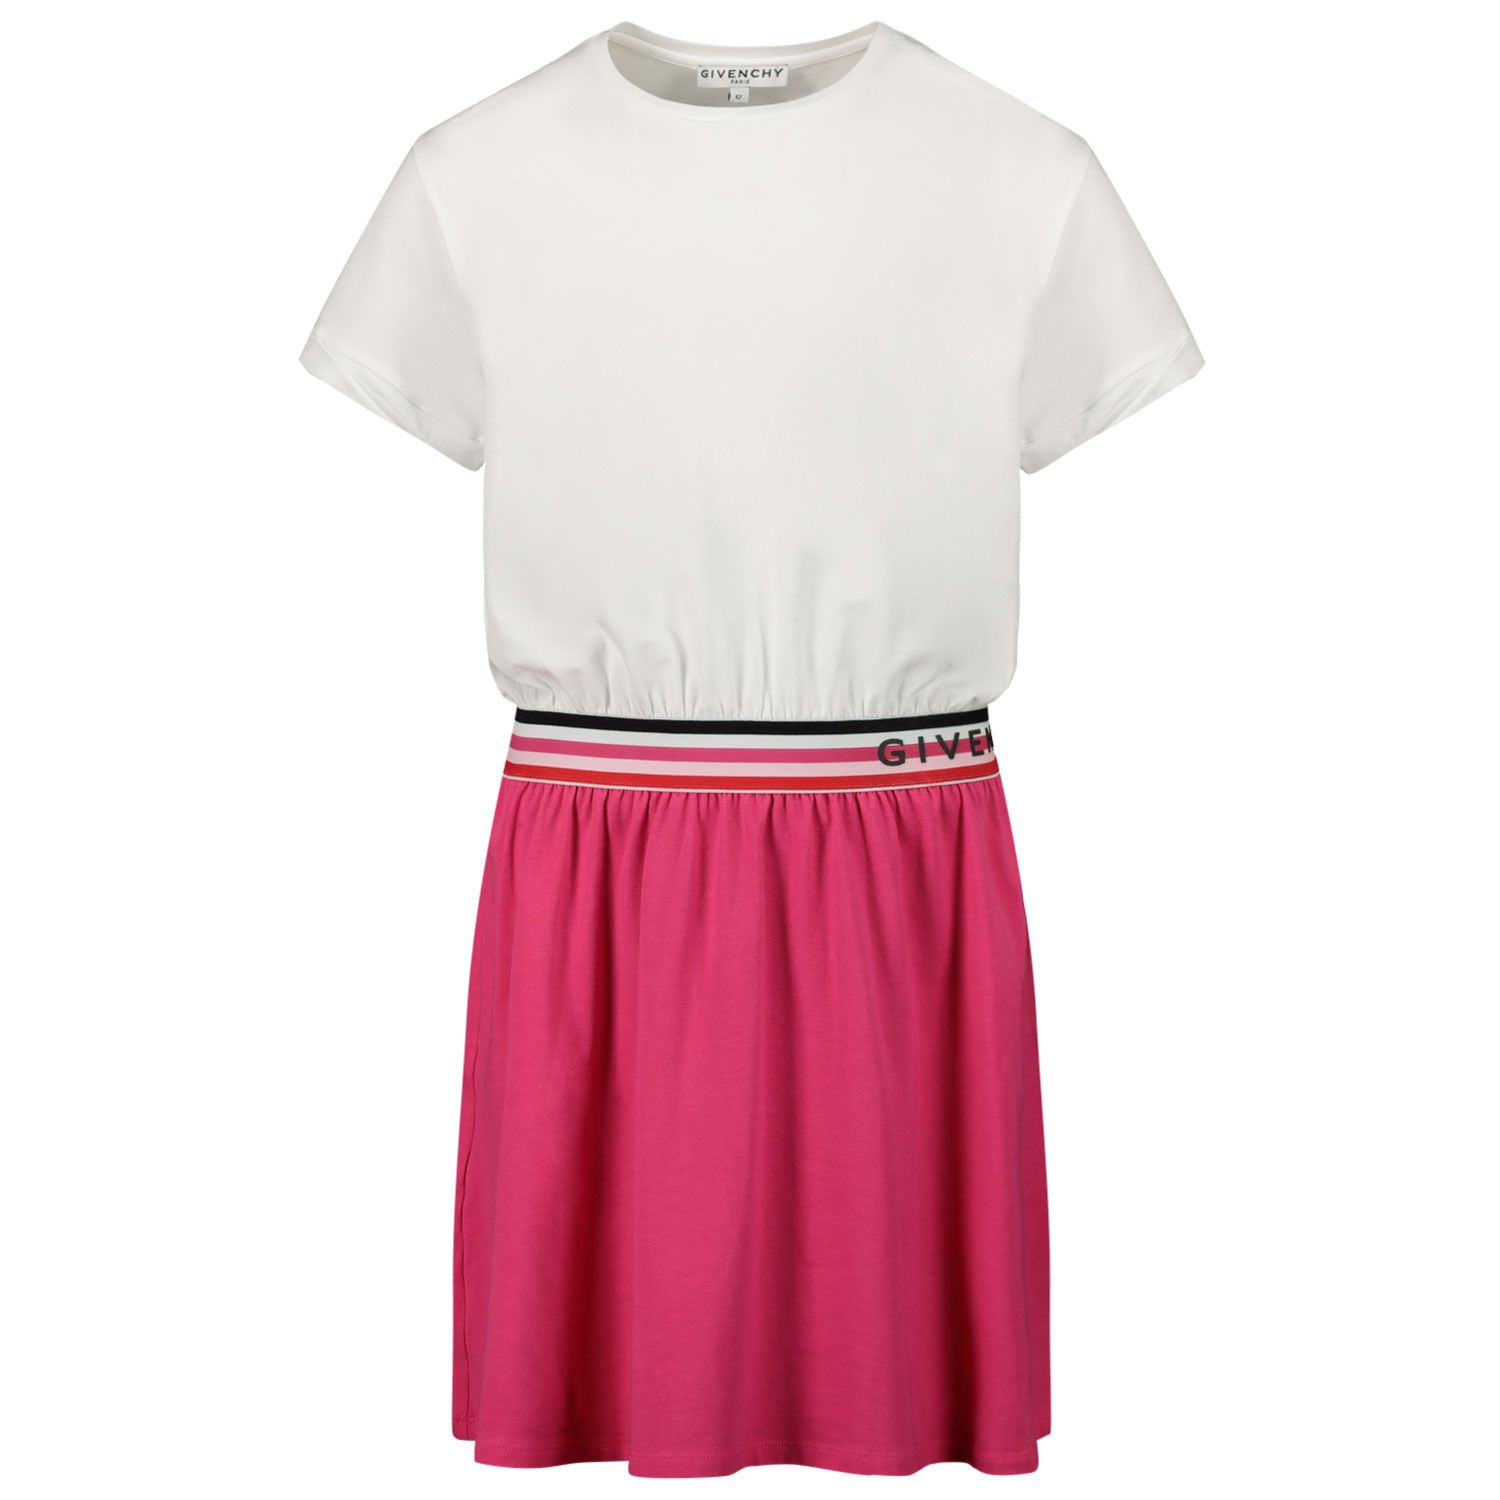 Picture of Givenchy H12149 kids dress fuchsia